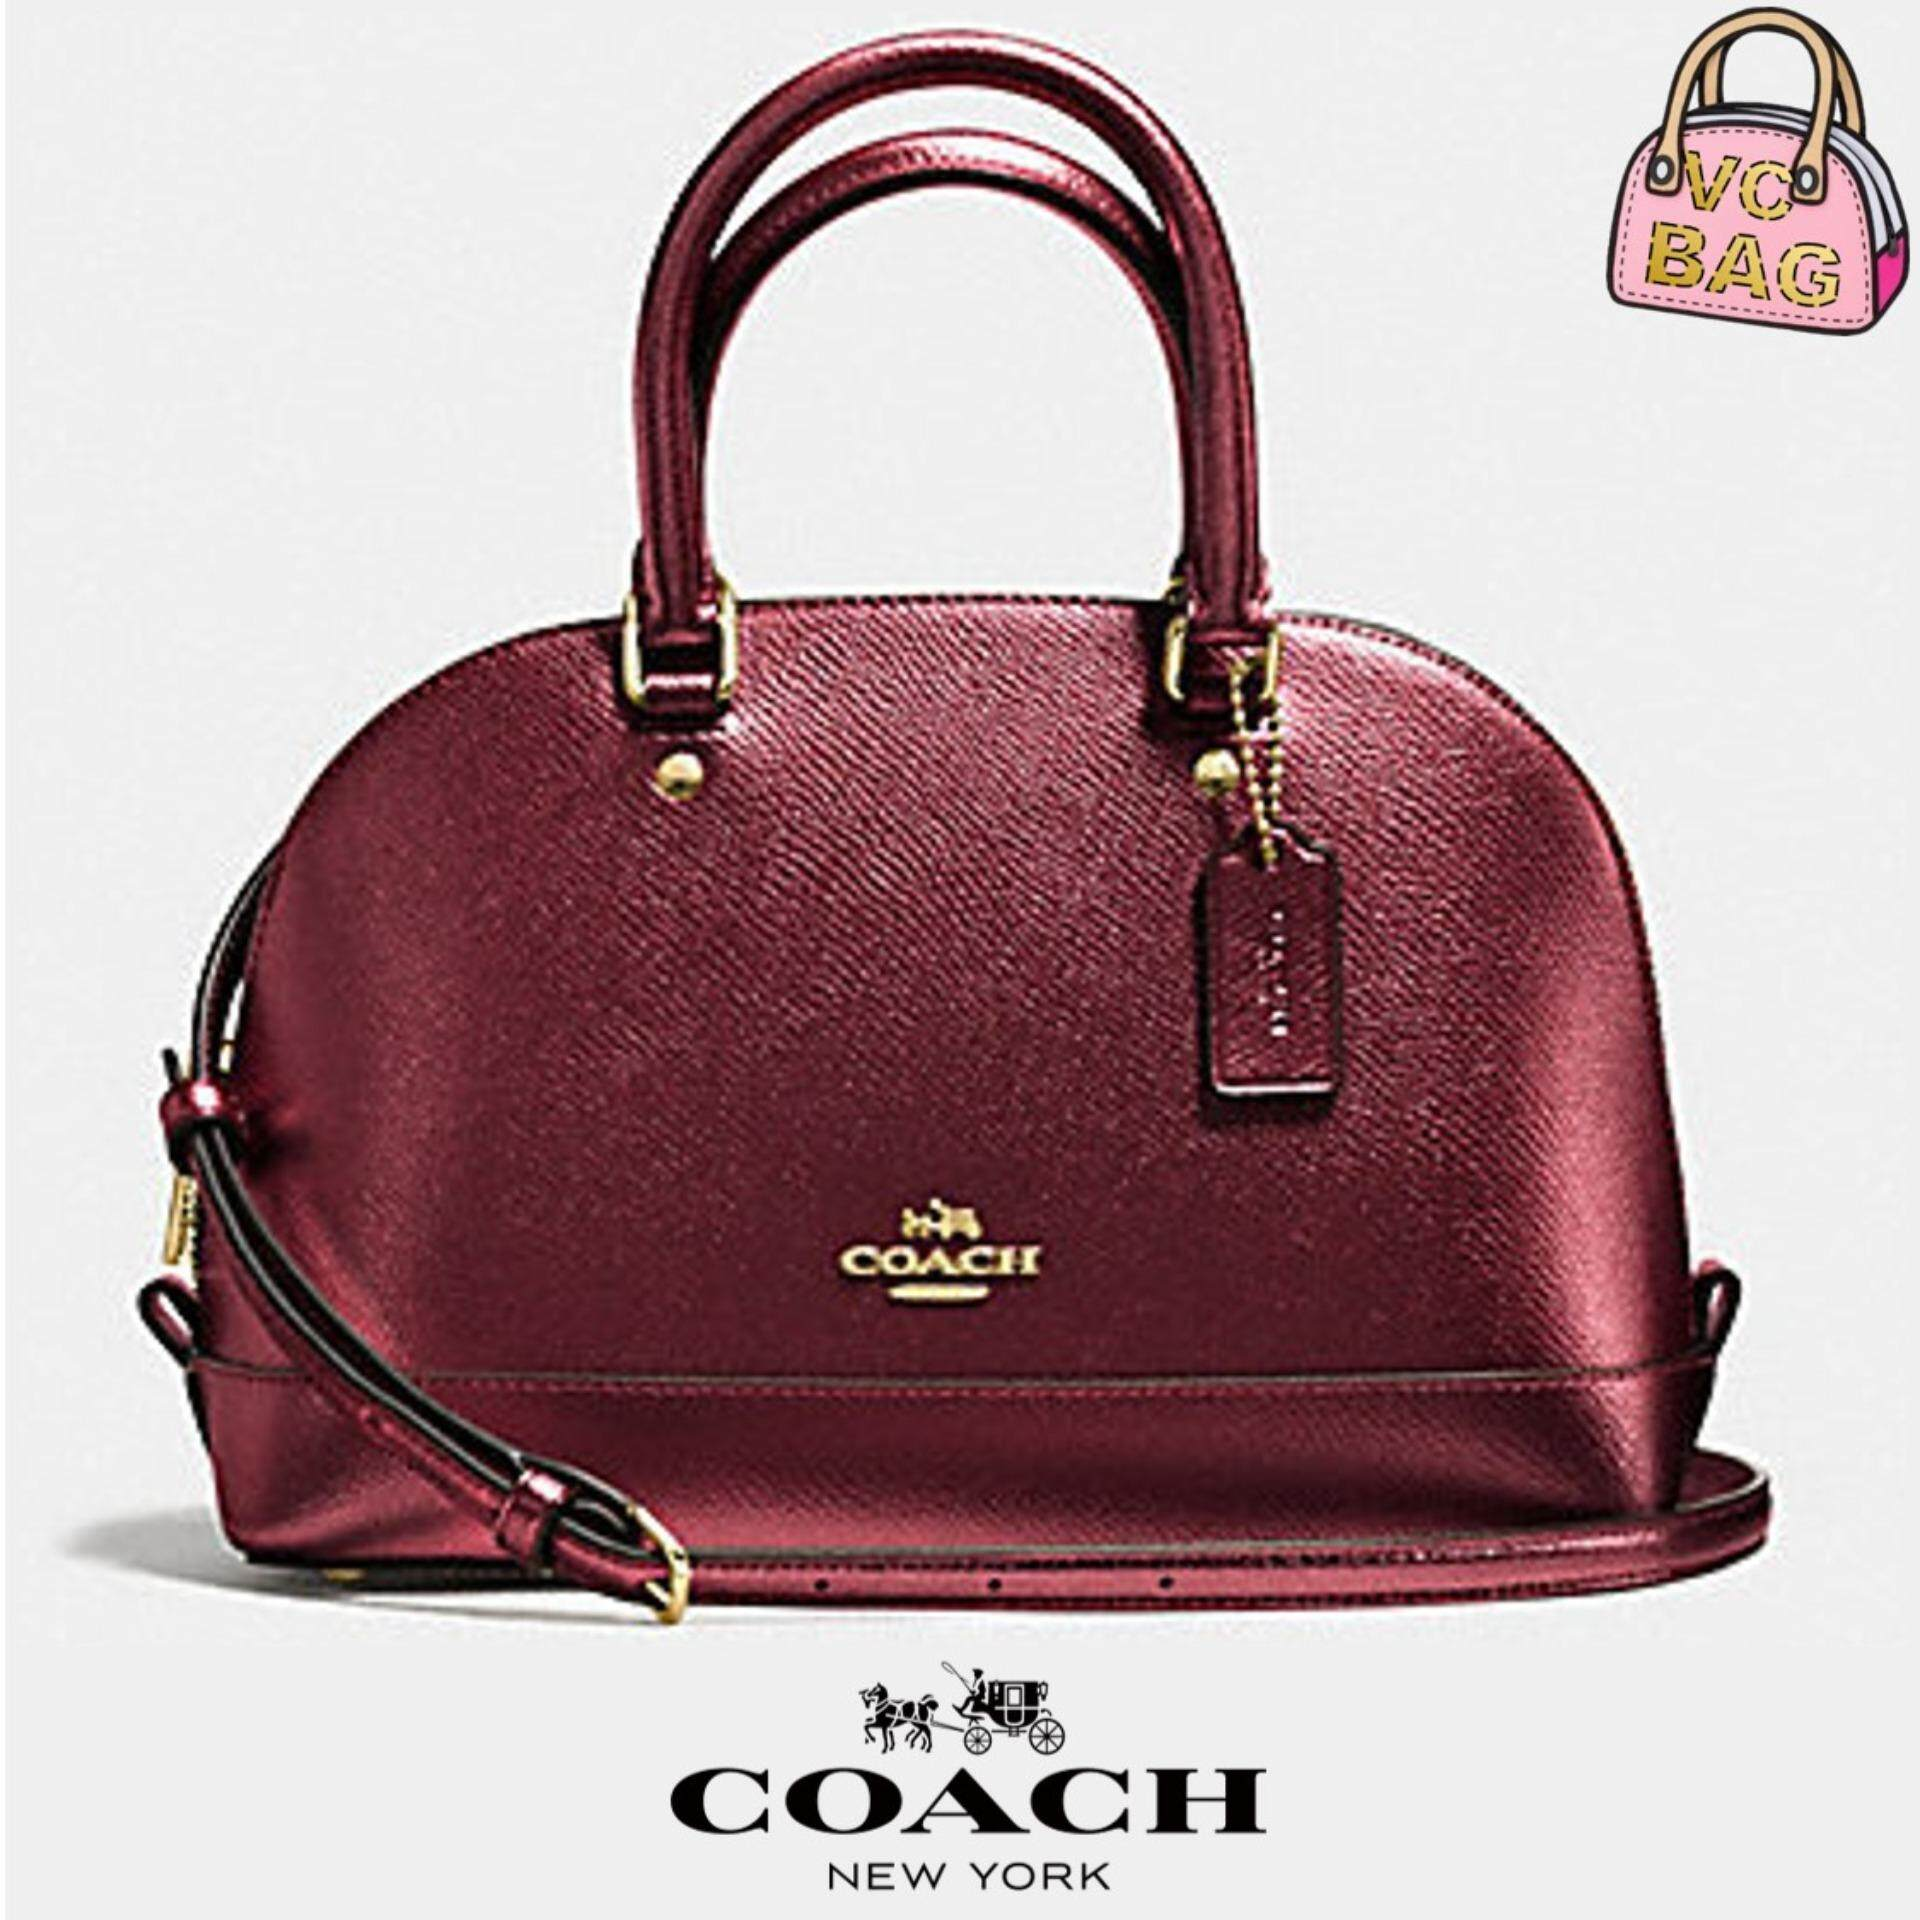 8847a25d31 COACH F56190 Mini Sierra Satchel in Metallic Crossgrain Leather Bag  [Imitation Gold/Cherry]